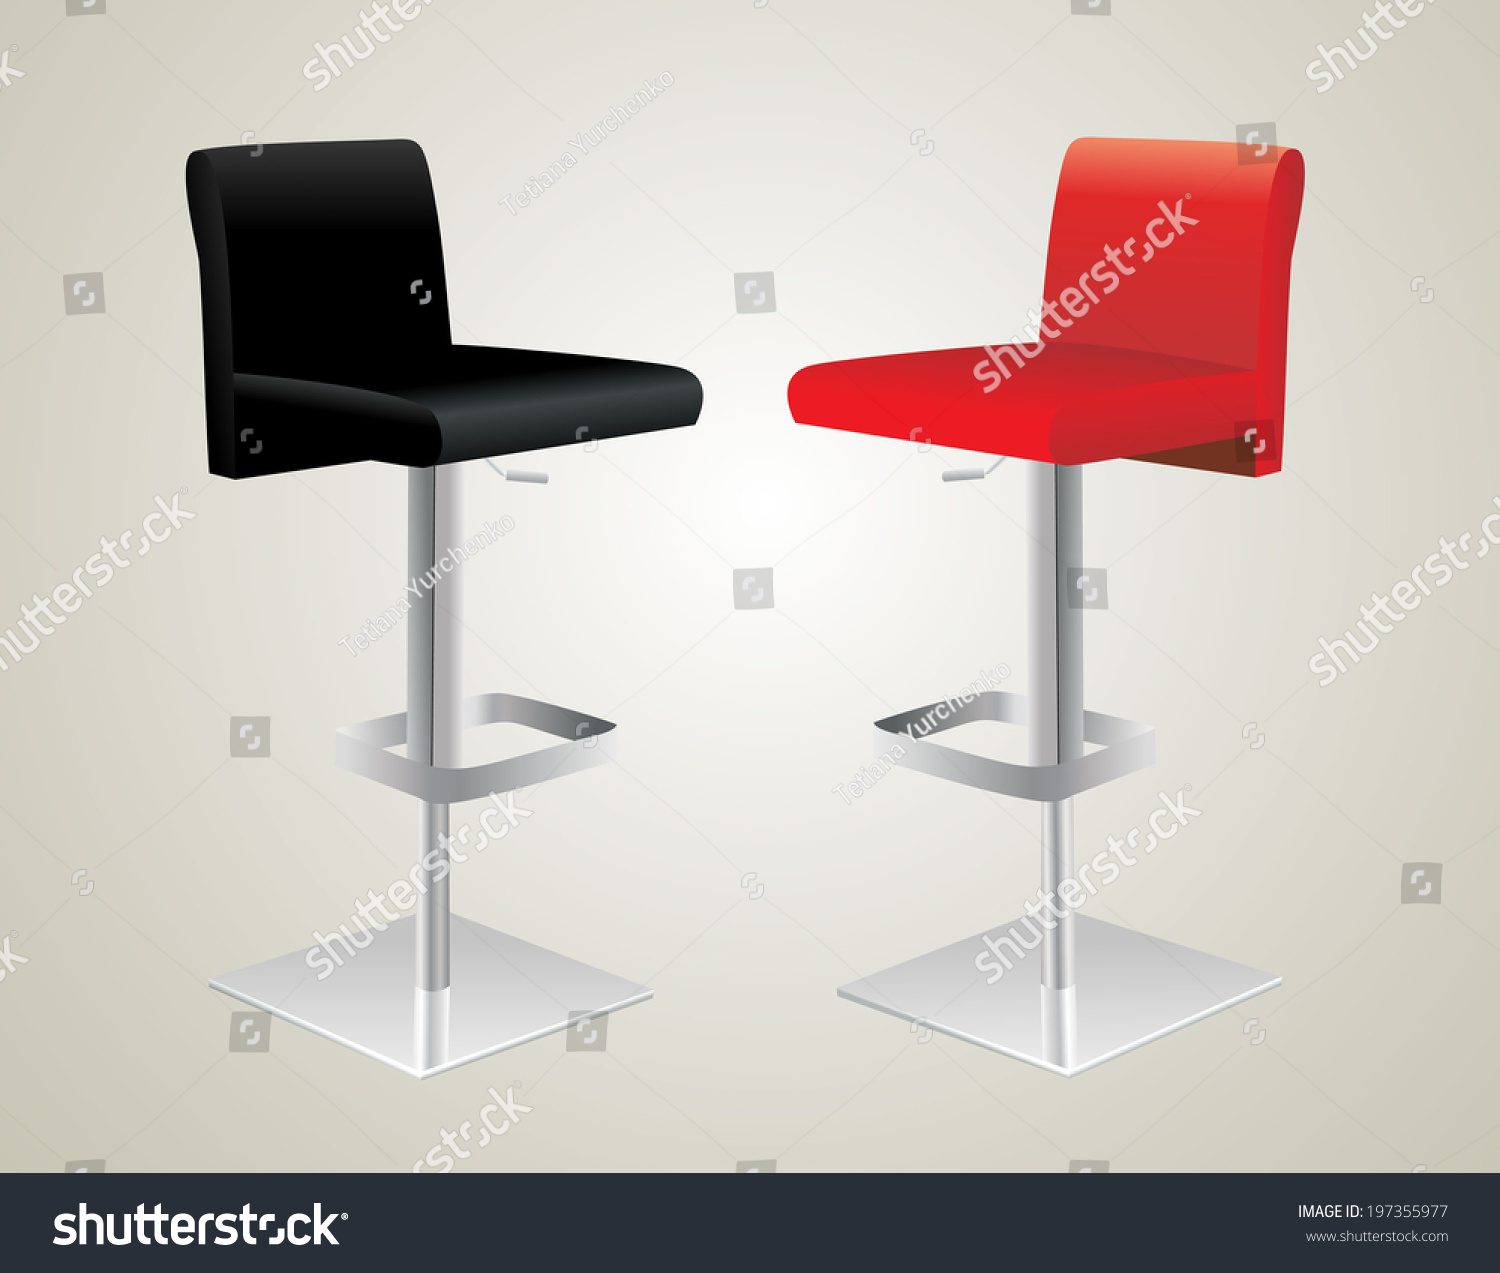 Bar Stools Stock Vector Illustration 197355977 Shutterstock : stock vector bar stools 197355977 from www.shutterstock.com size 1500 x 1273 jpeg 234kB